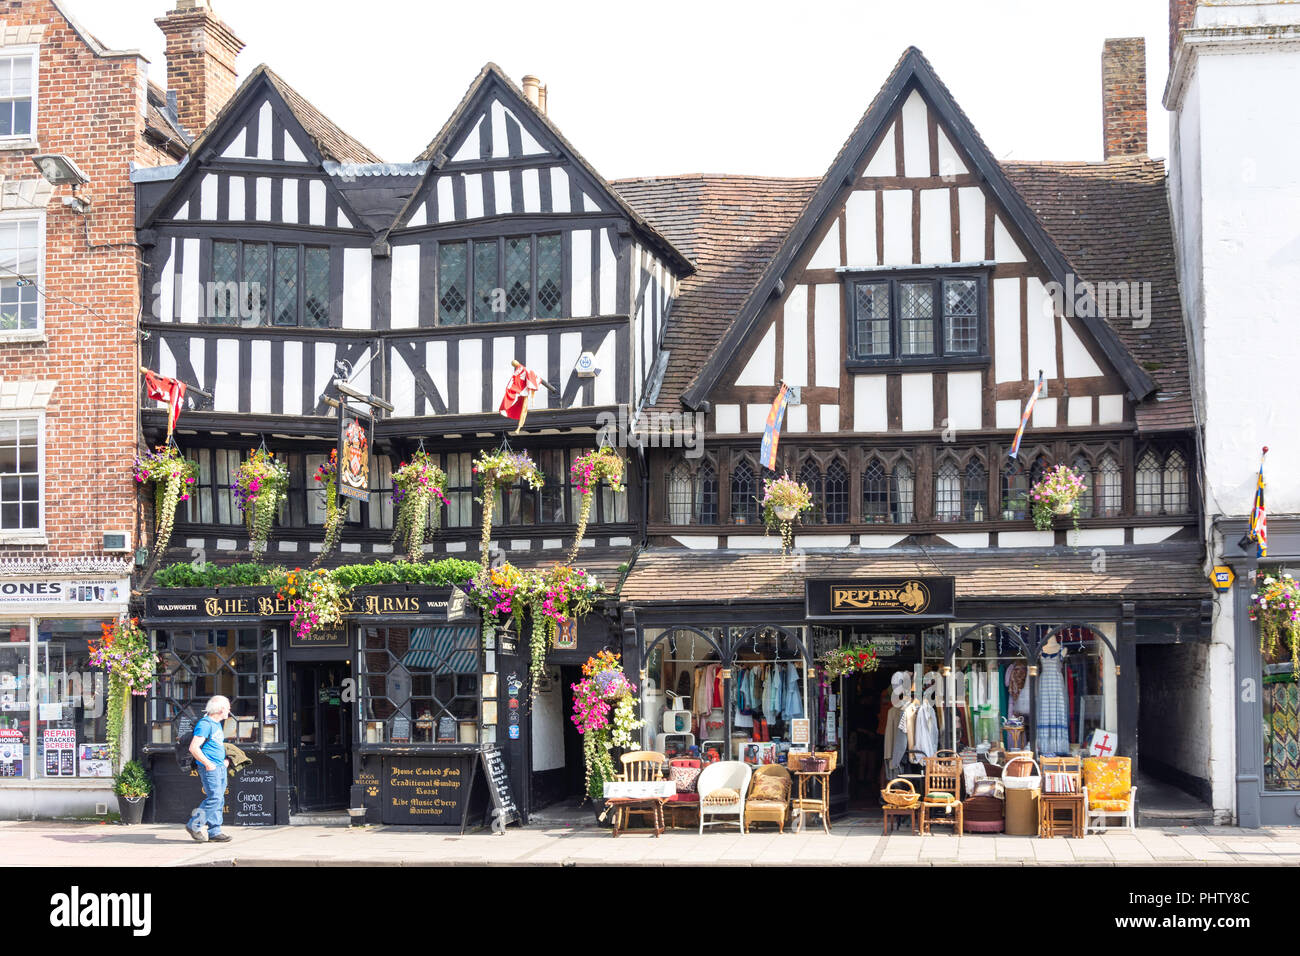 15th century The Berkeley Arms and Replay Vintage shop, Church Street, Tewkesbury, Gloucestershire, England, United Kingdom - Stock Image